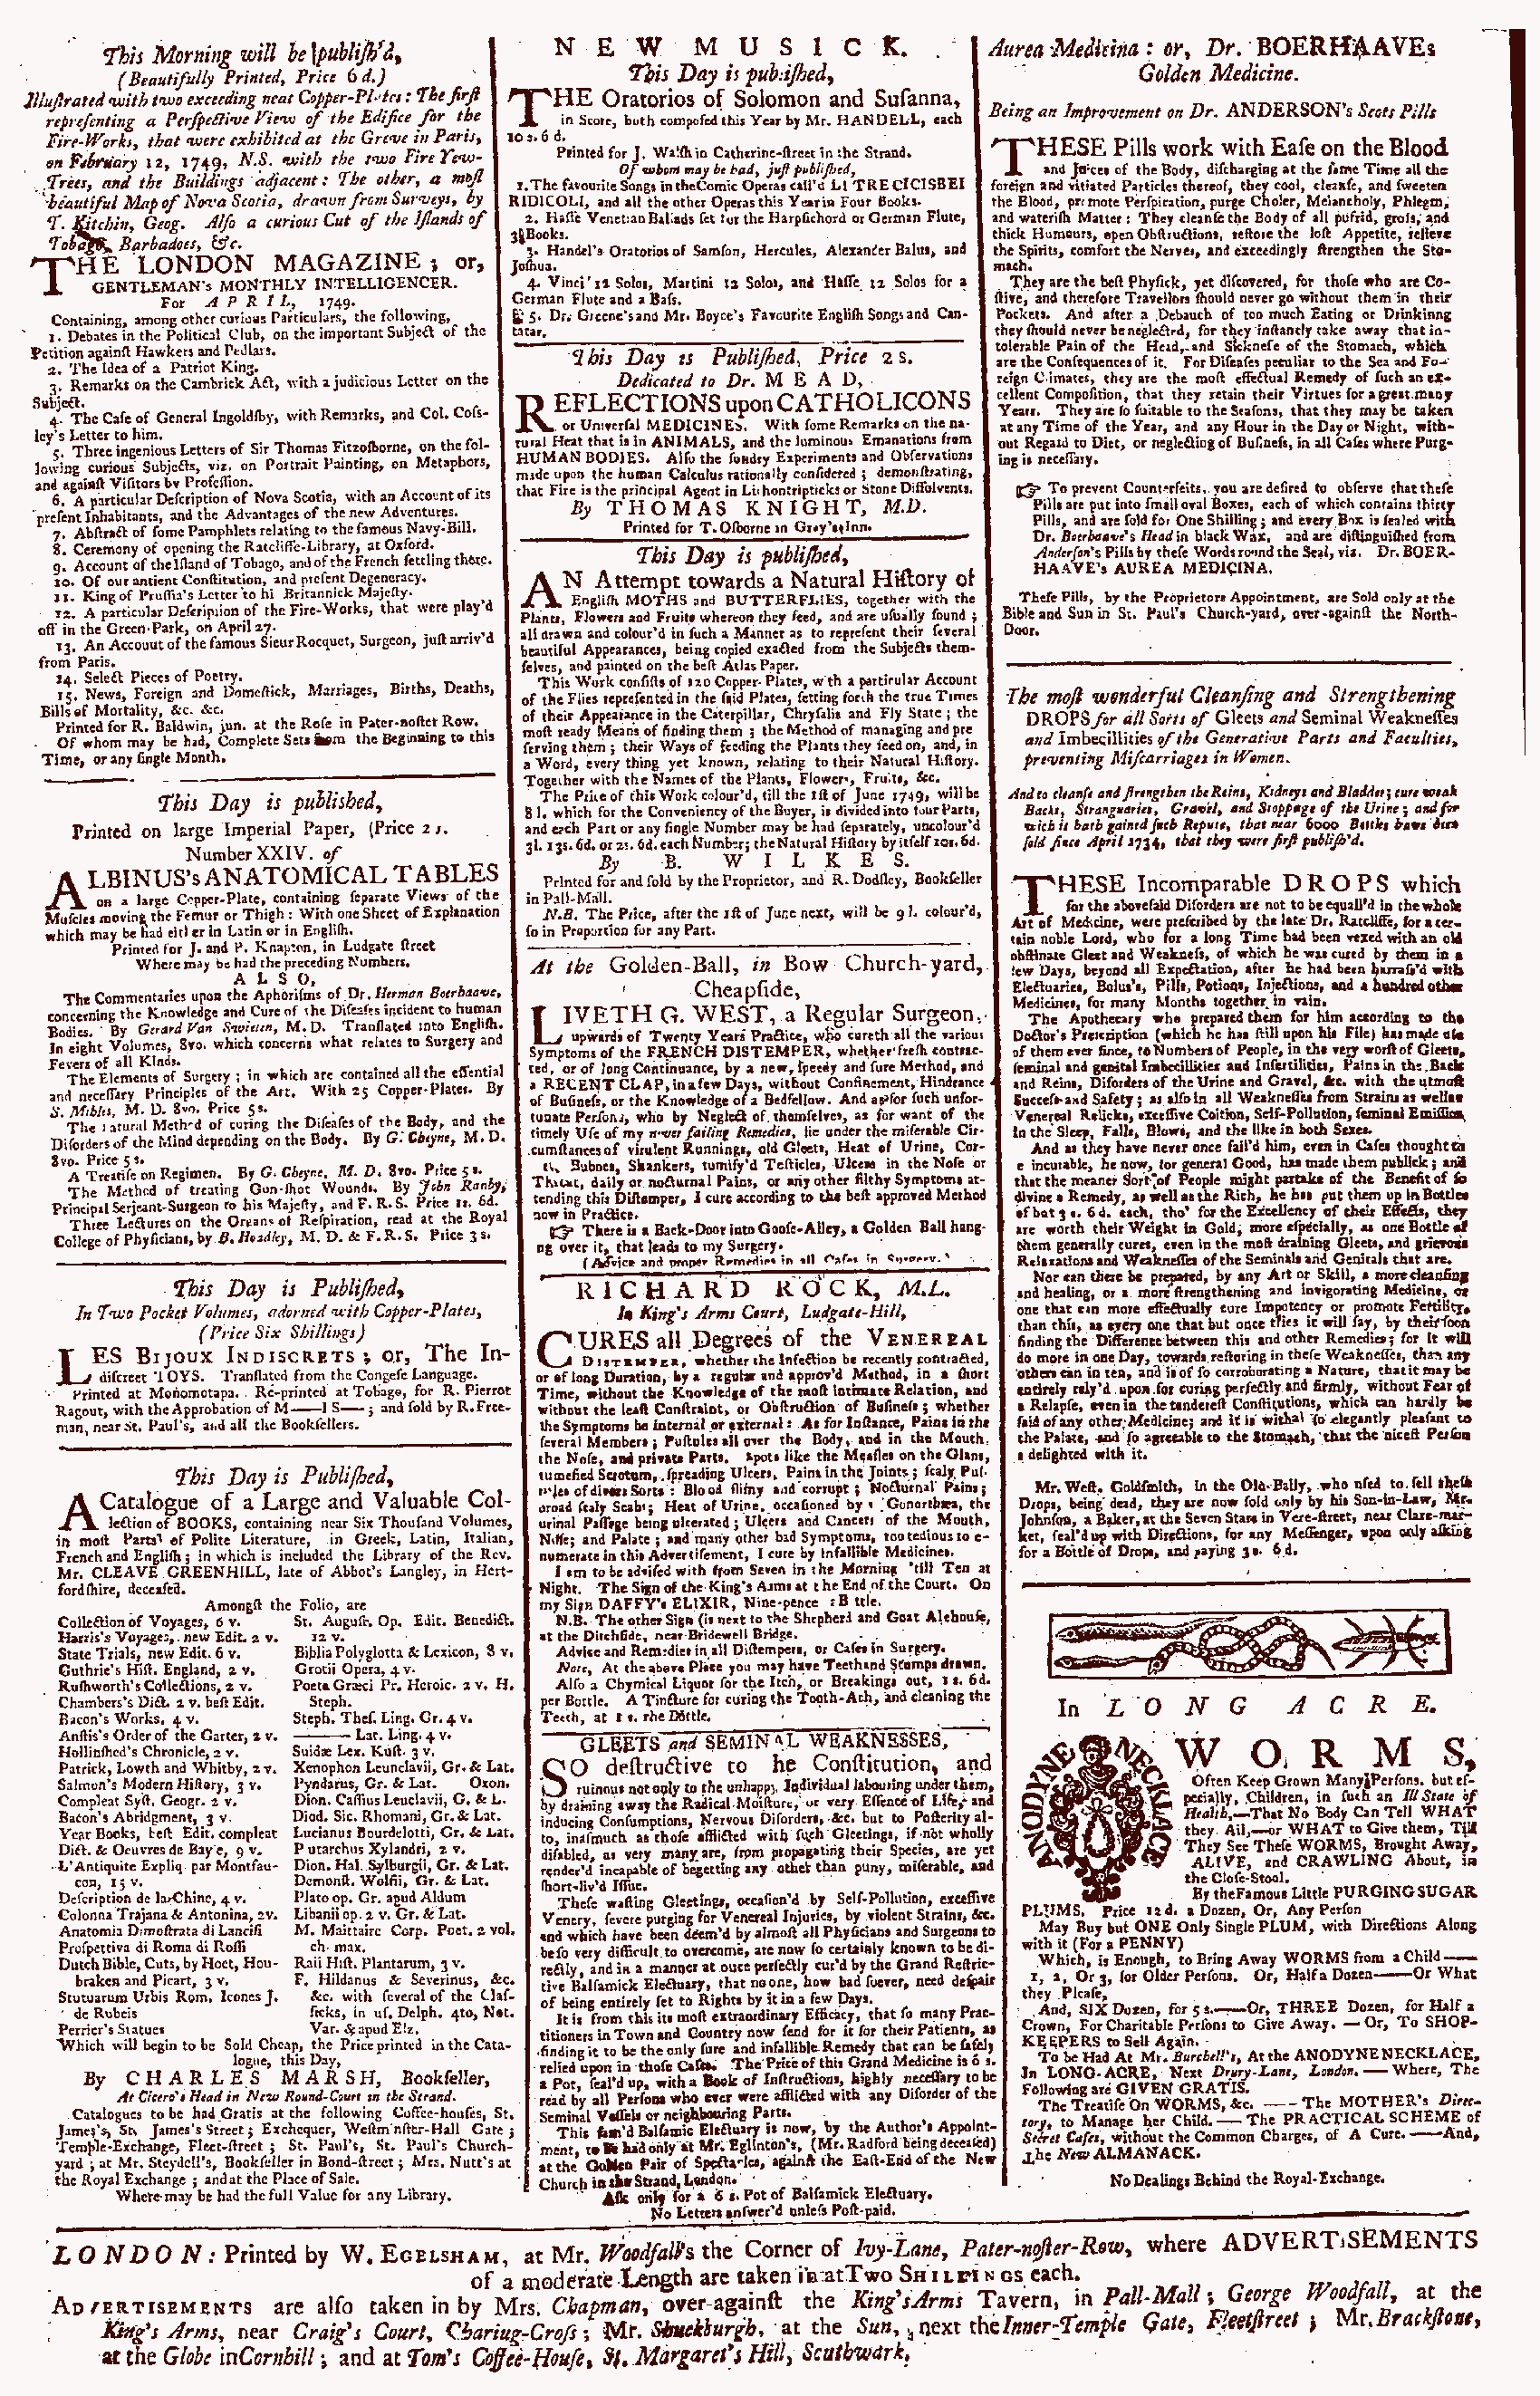 Newspaper page including adverts for pills and potions, 1744